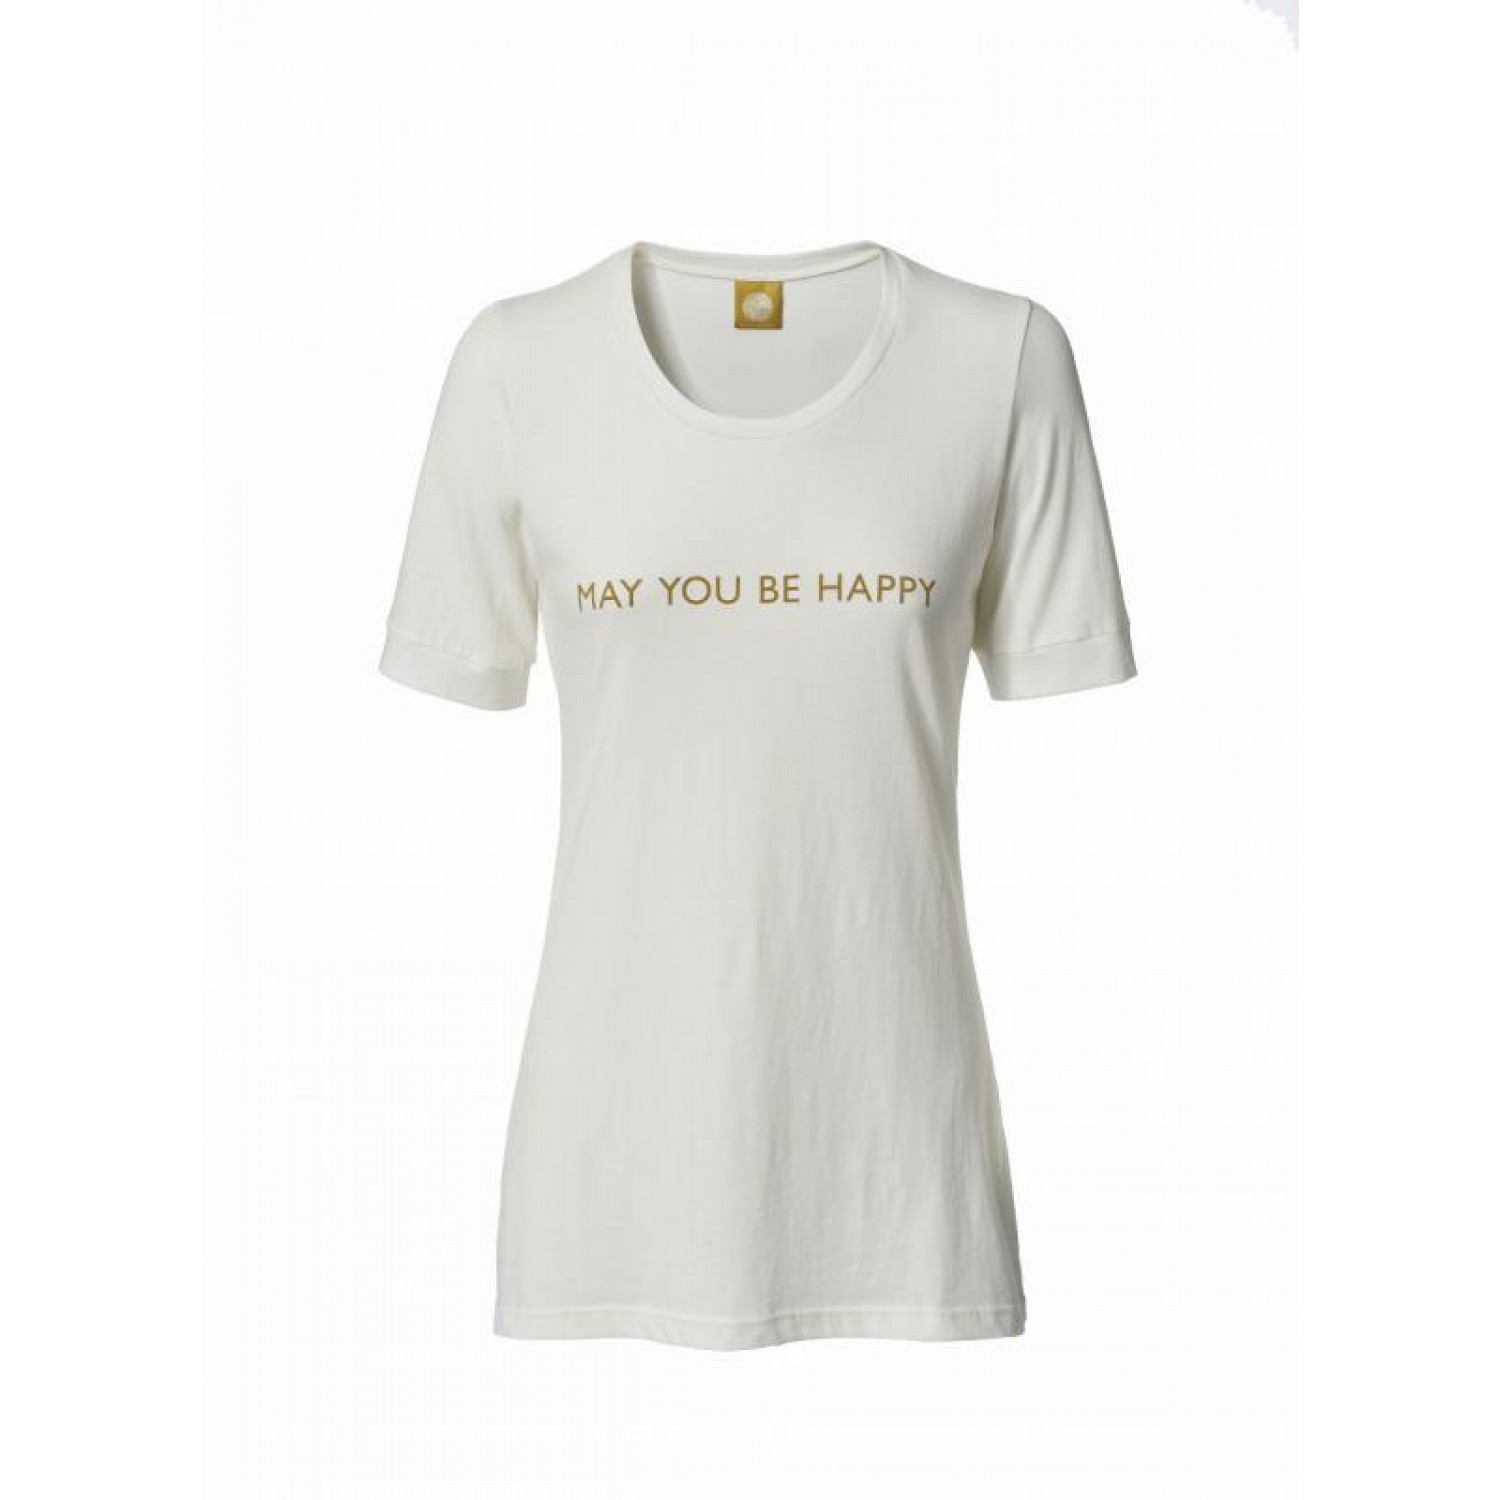 T-Shirt MANI GOLD, light, organic & fair